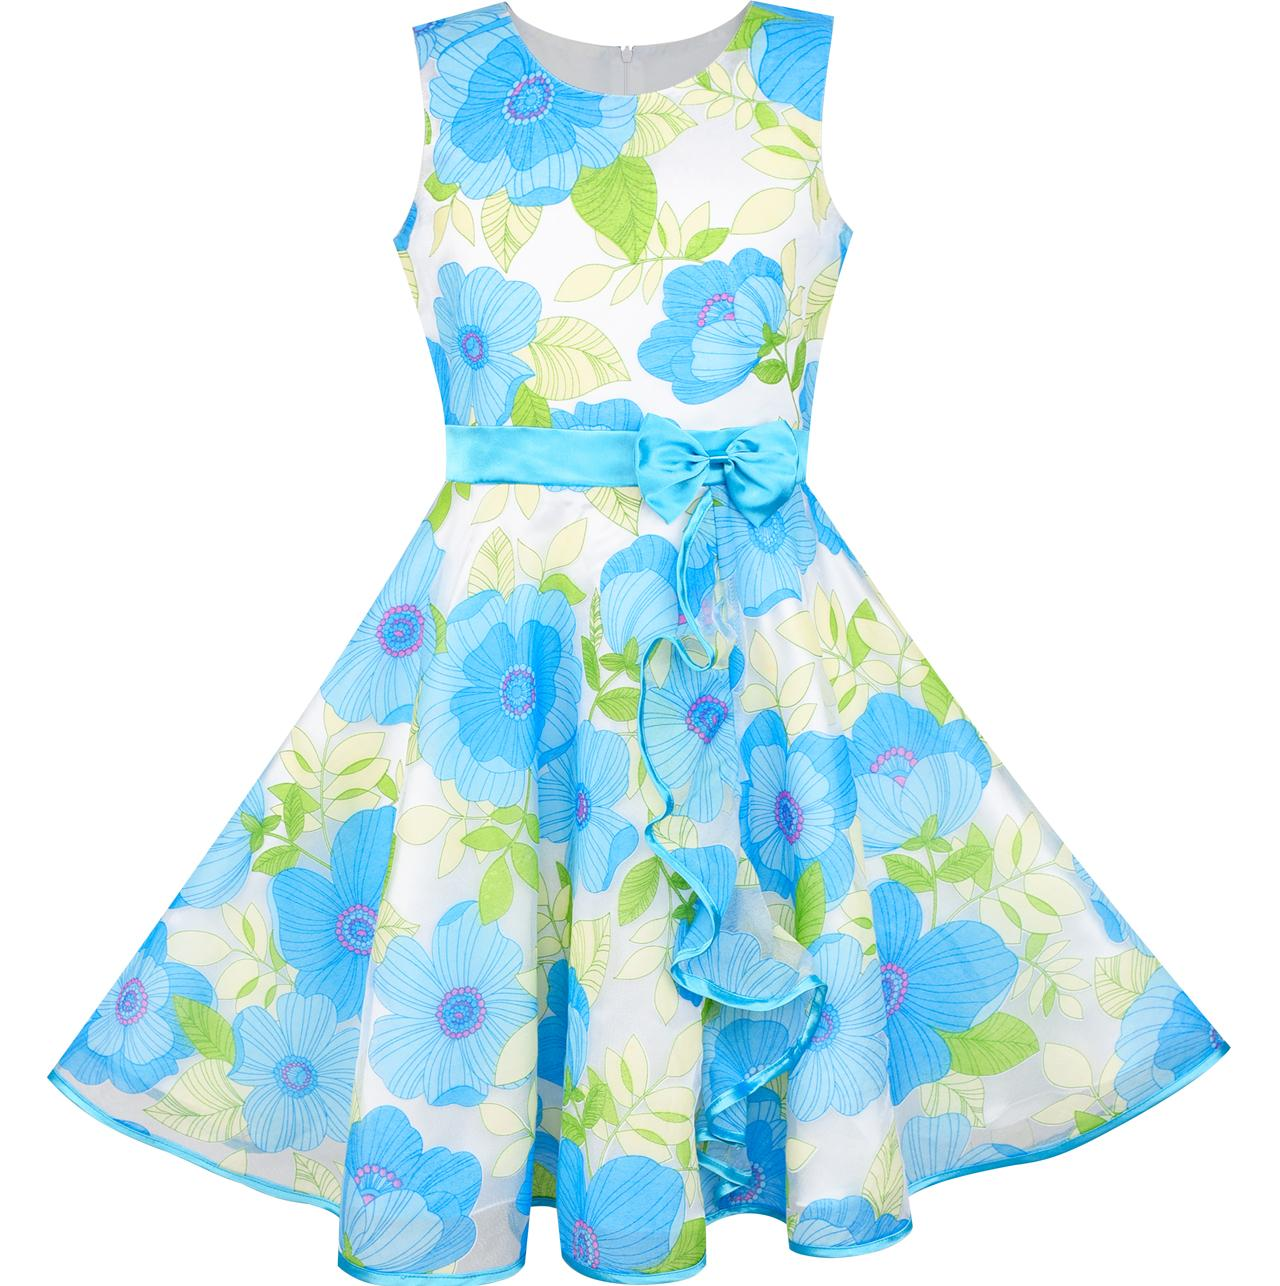 Girls Dress Blue Flower Bow Tie Tulle Party Princess 2018 Summer Wedding Dresses Kids Clothes Size 4-12 Pageant Sundress<br>